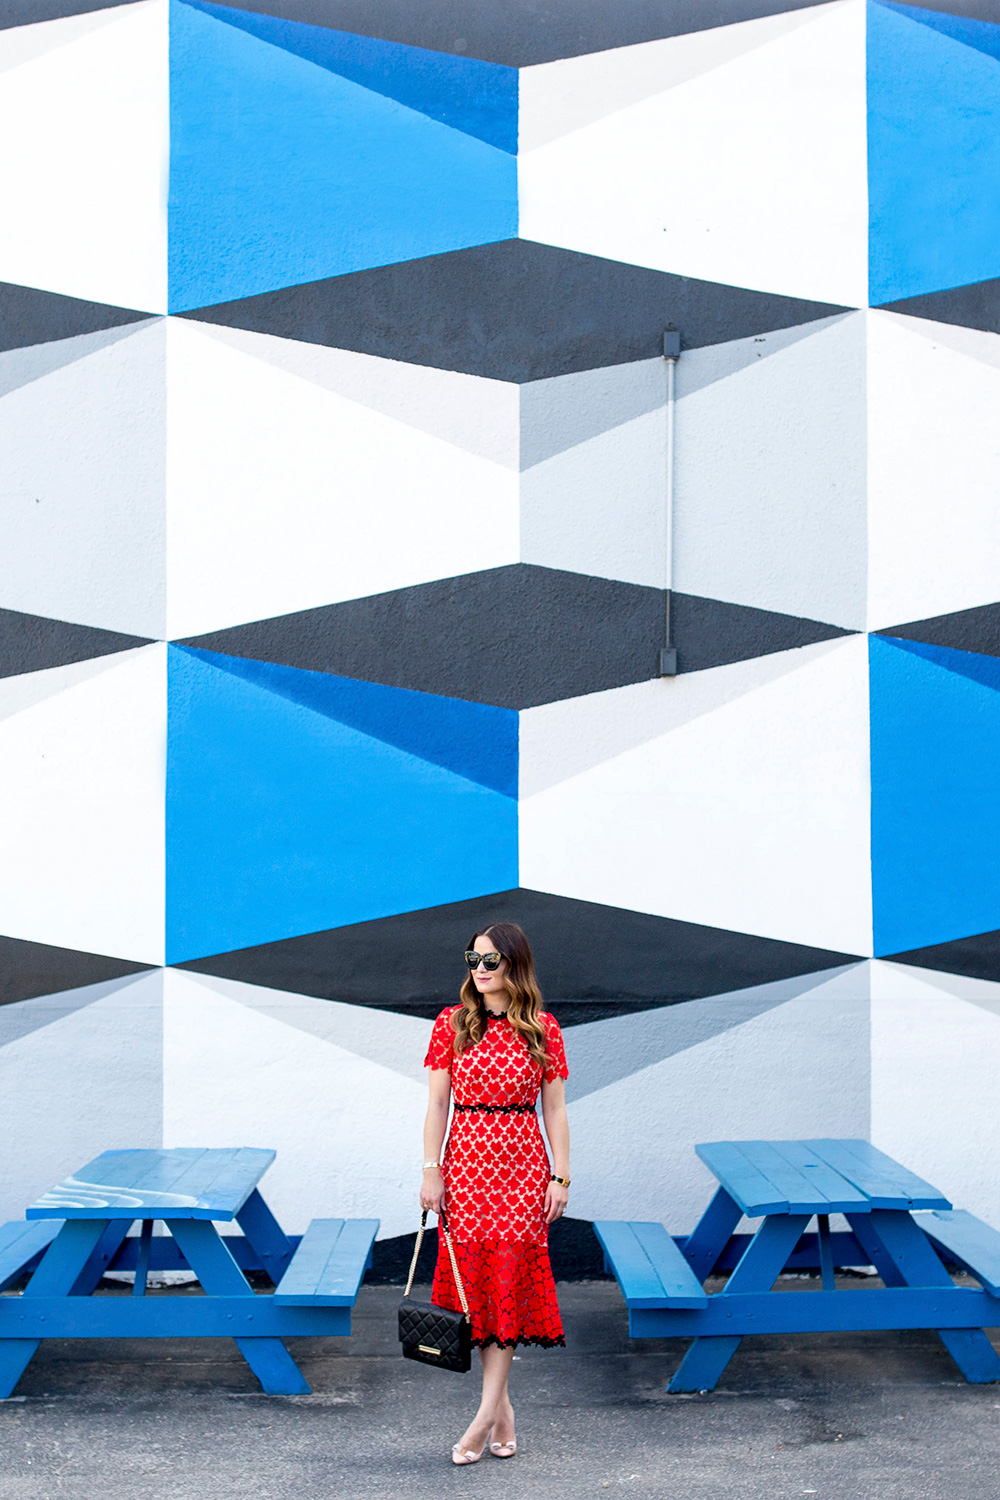 Geometric Mural Wynwood Miami